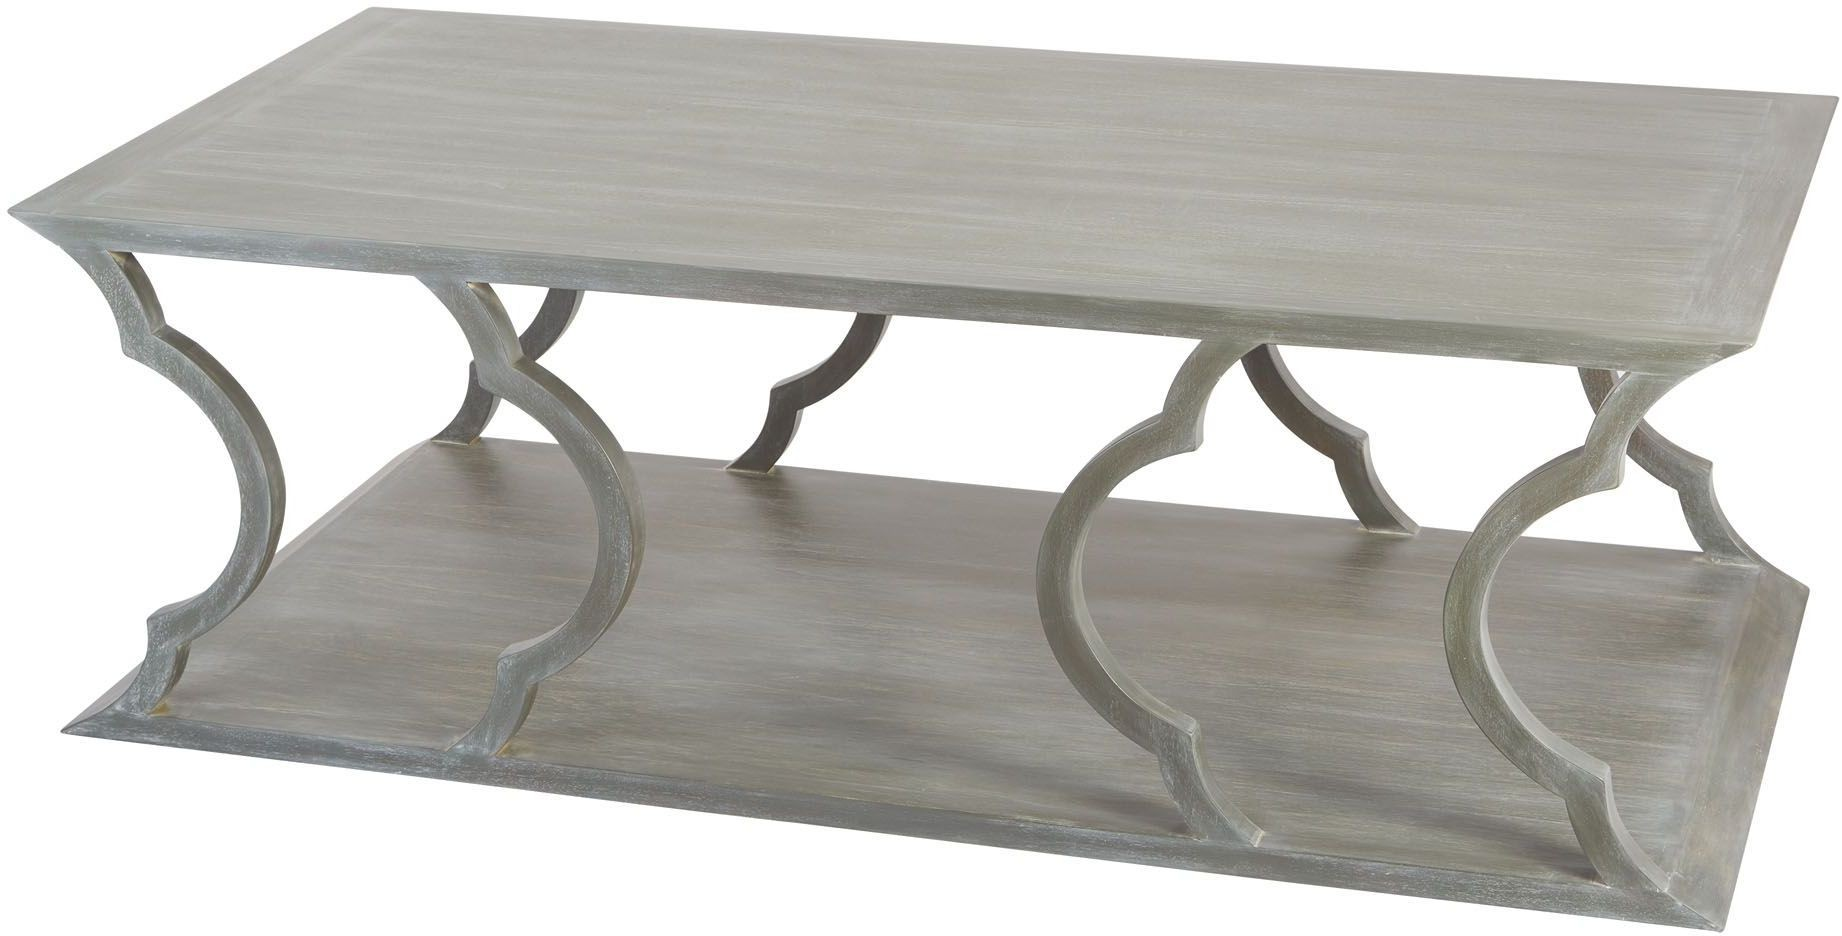 Mahogany Cloud Grey Wood Coffee Table 158 002 Dimond Home